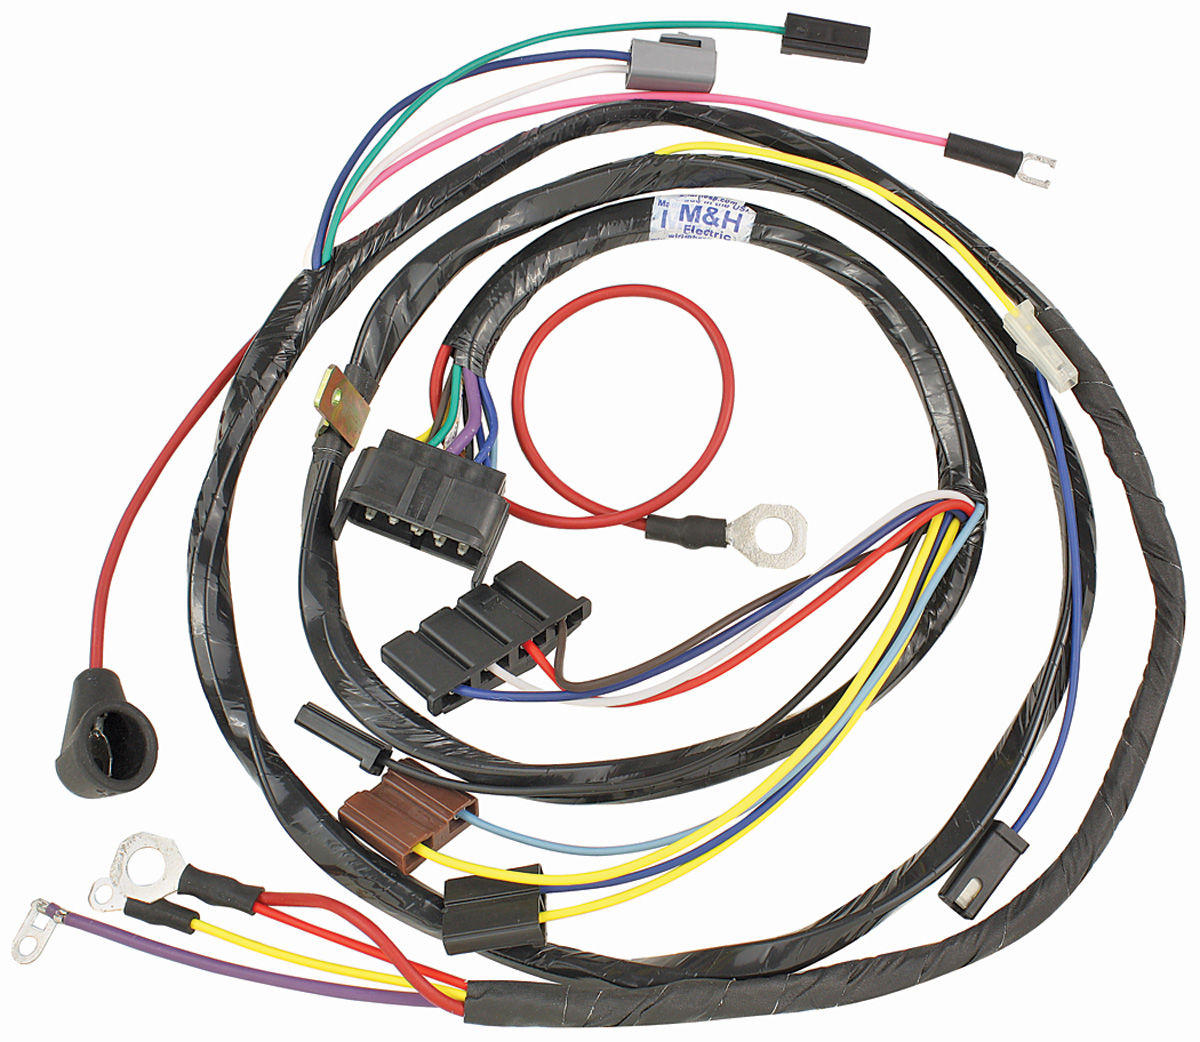 hight resolution of wiring harness for 1964 buick riviera wiring library rh 8 bloxhuette de 1962 buick riviera 1963 buick riviera